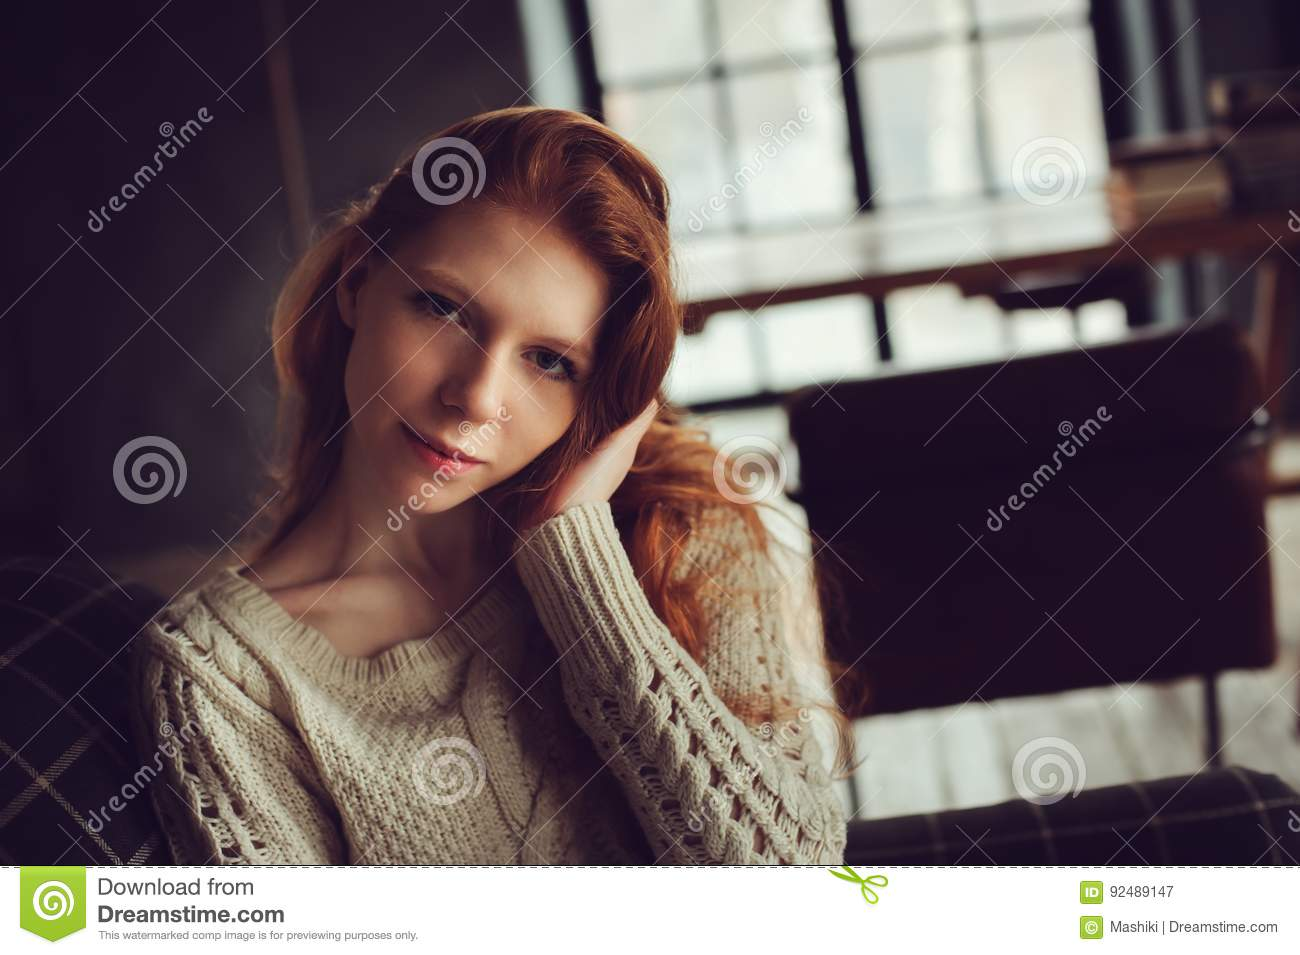 Portrait Of Dreamy Young Beautiful Redhead Woman Relaxing At Home Stock Image - Image of